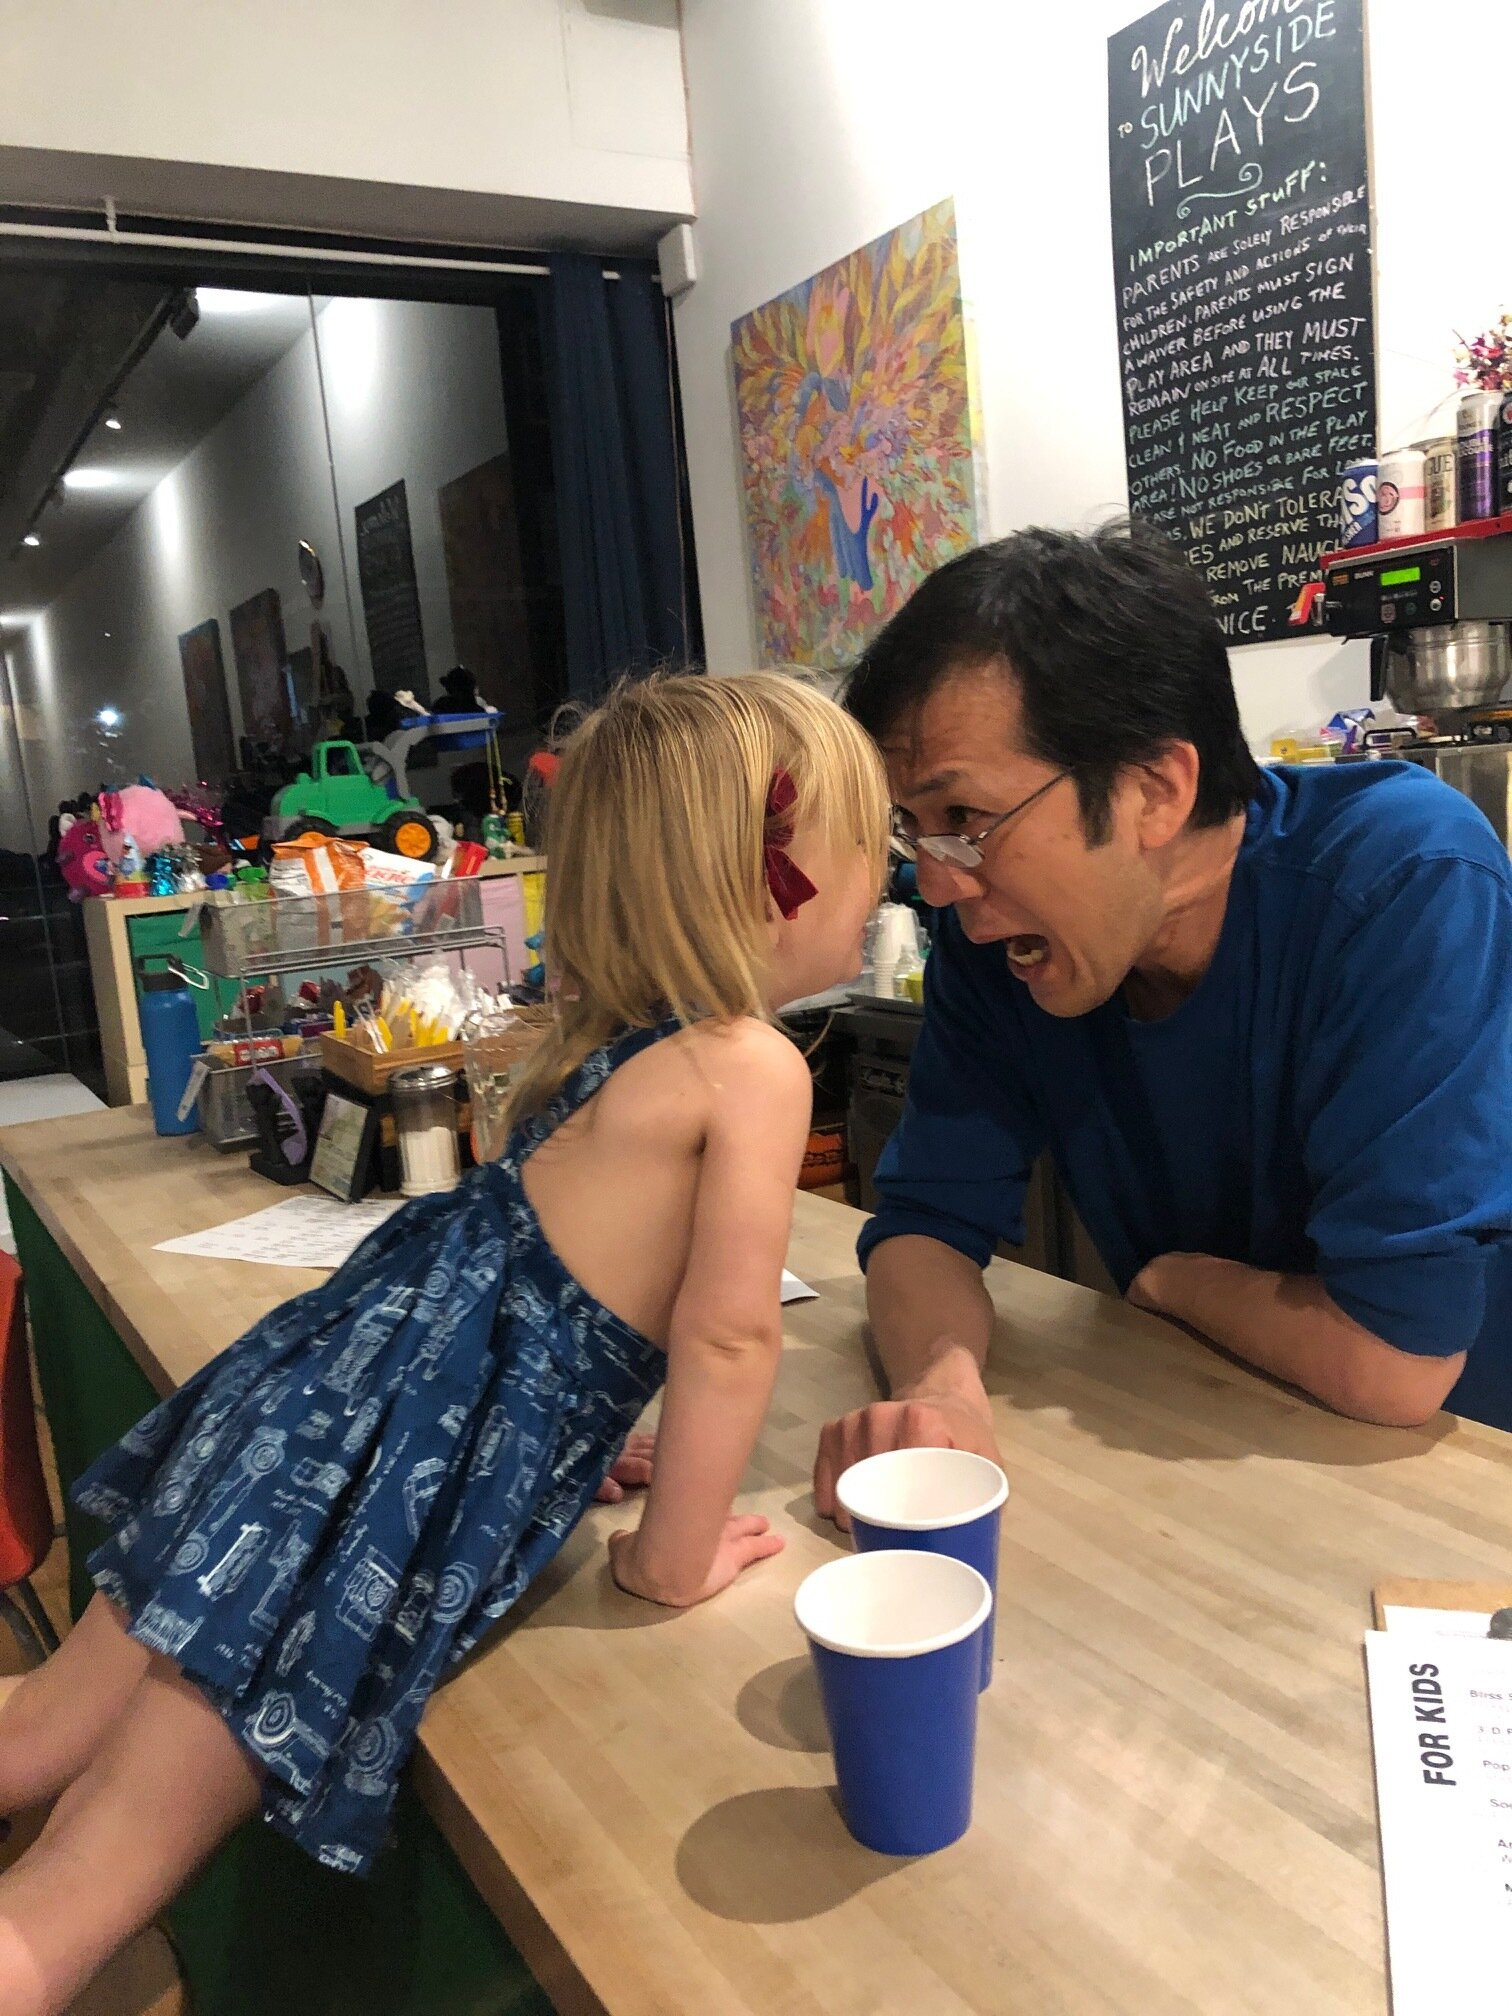 Did we mention Sunnyside Plays has a weekly parent happy hour?! HERE FOR IT. Just like Gigi